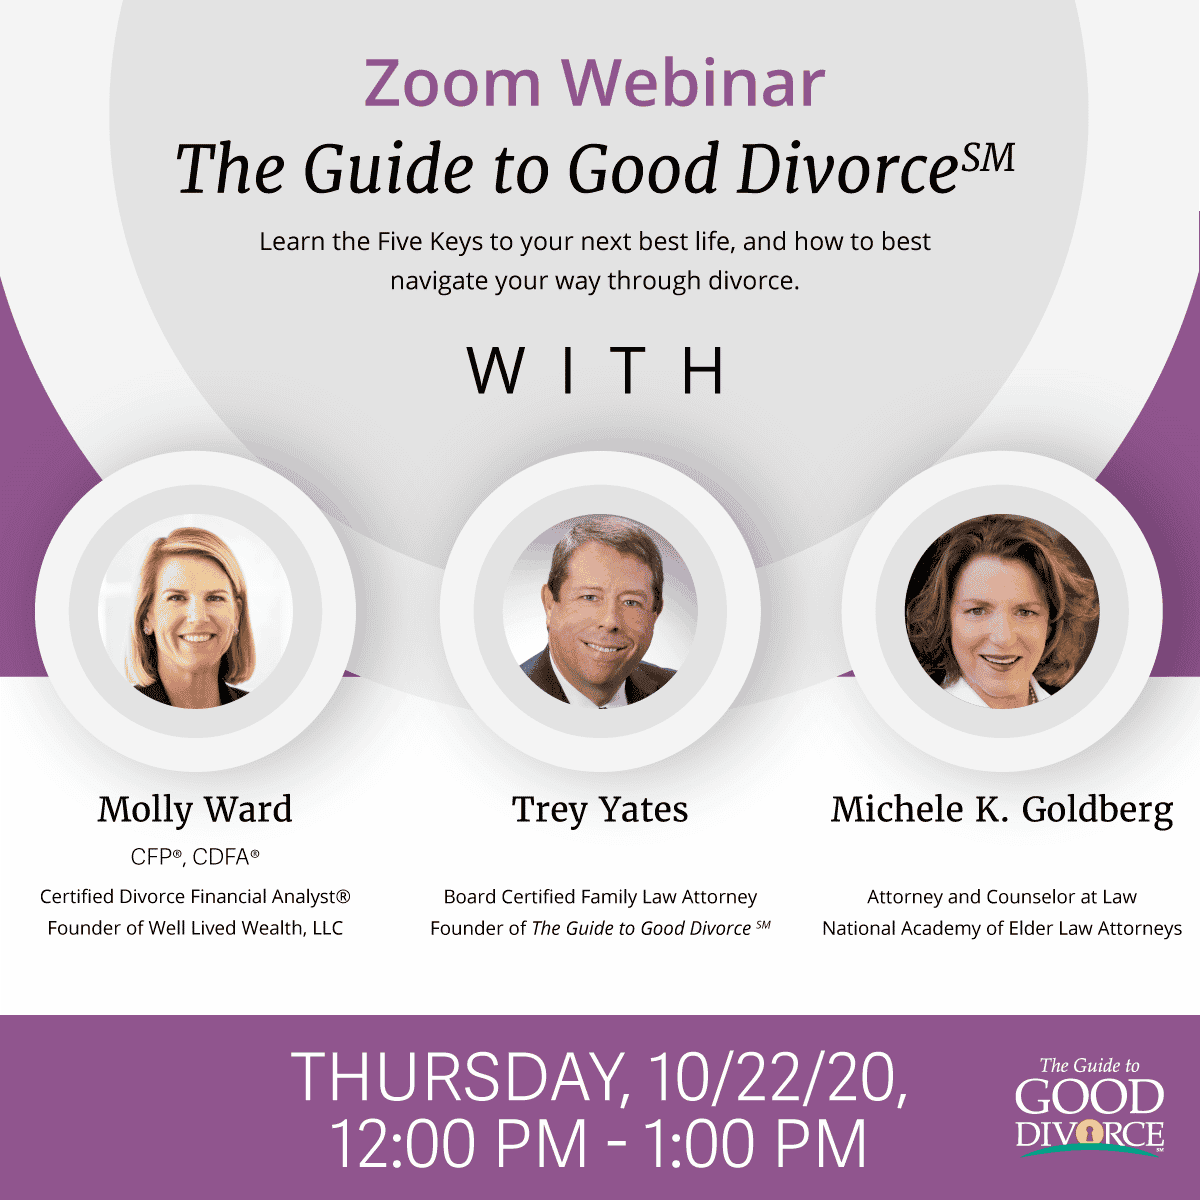 The Guide To Good Divorce℠ 10/22/20 Zoom Webinar: Special Considerations For Special Needs